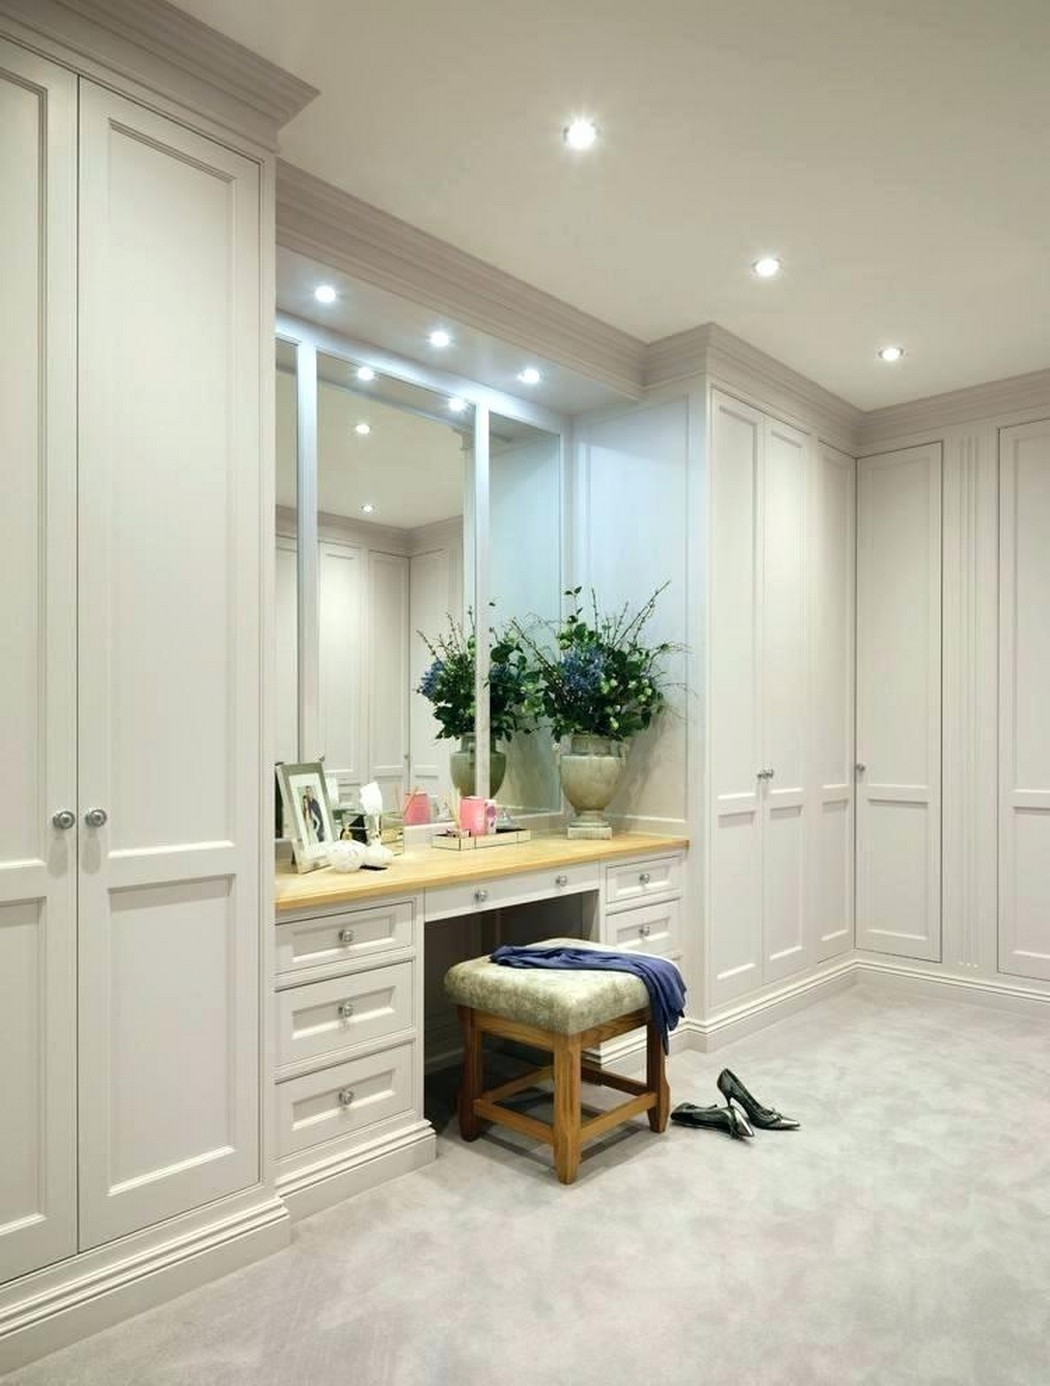 Outstanding Construction Inspiration of Closet You Must See